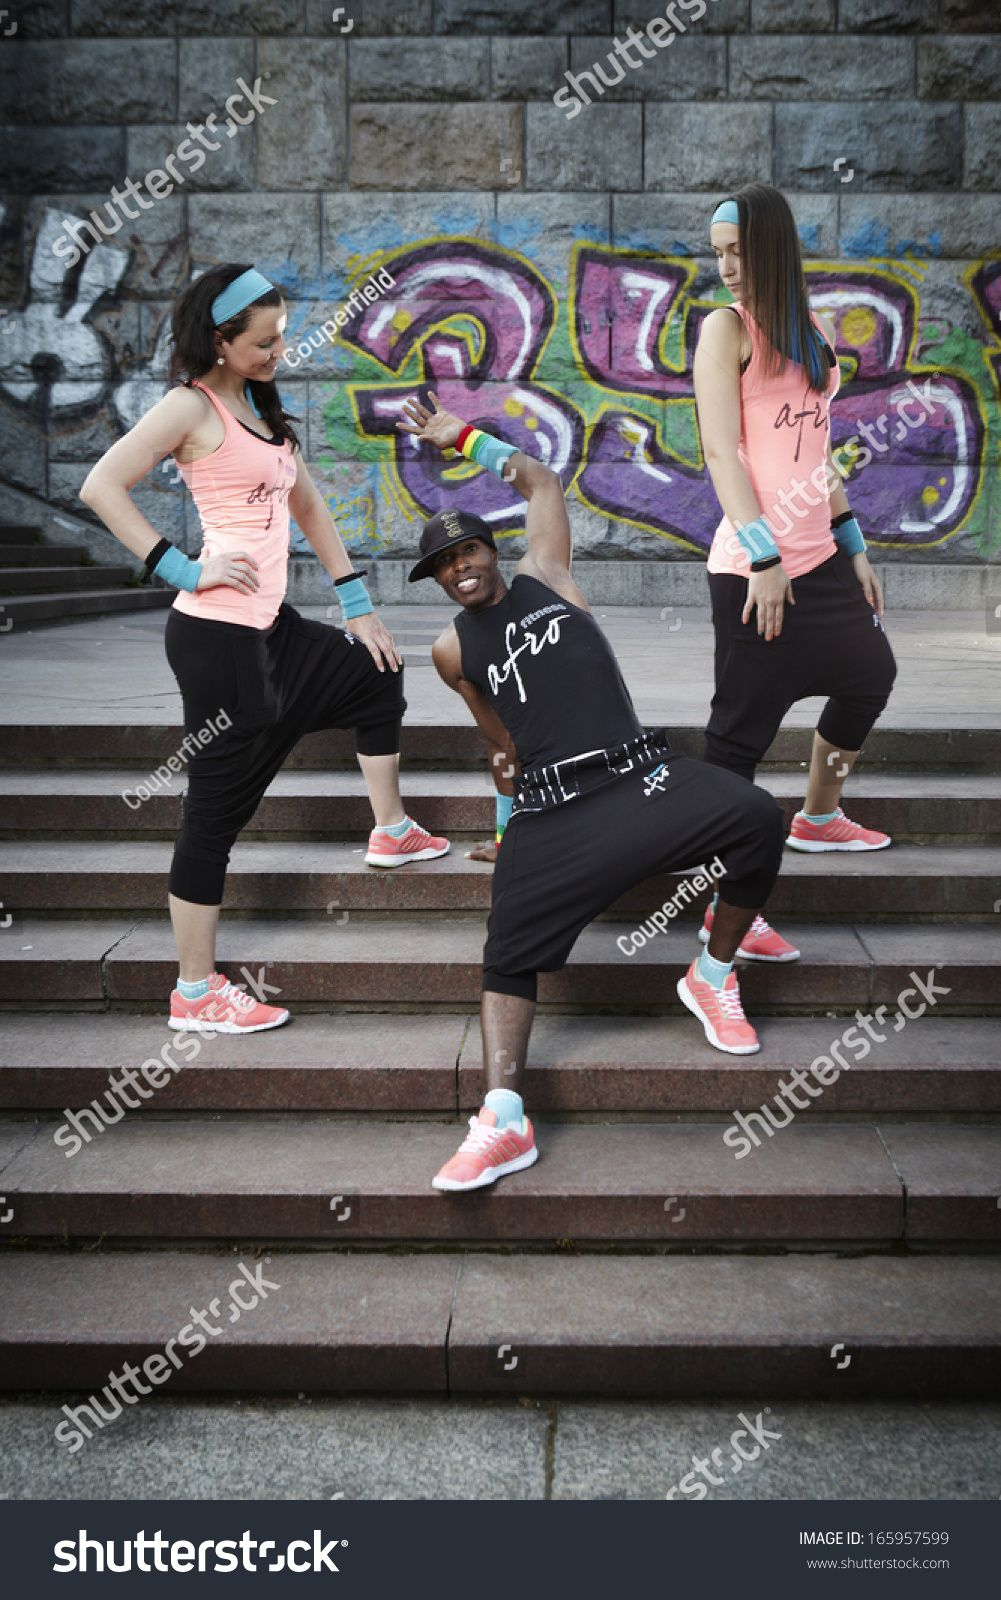 Three people exercising outdoor #Ad , #ad, #people#exercising#outdoor